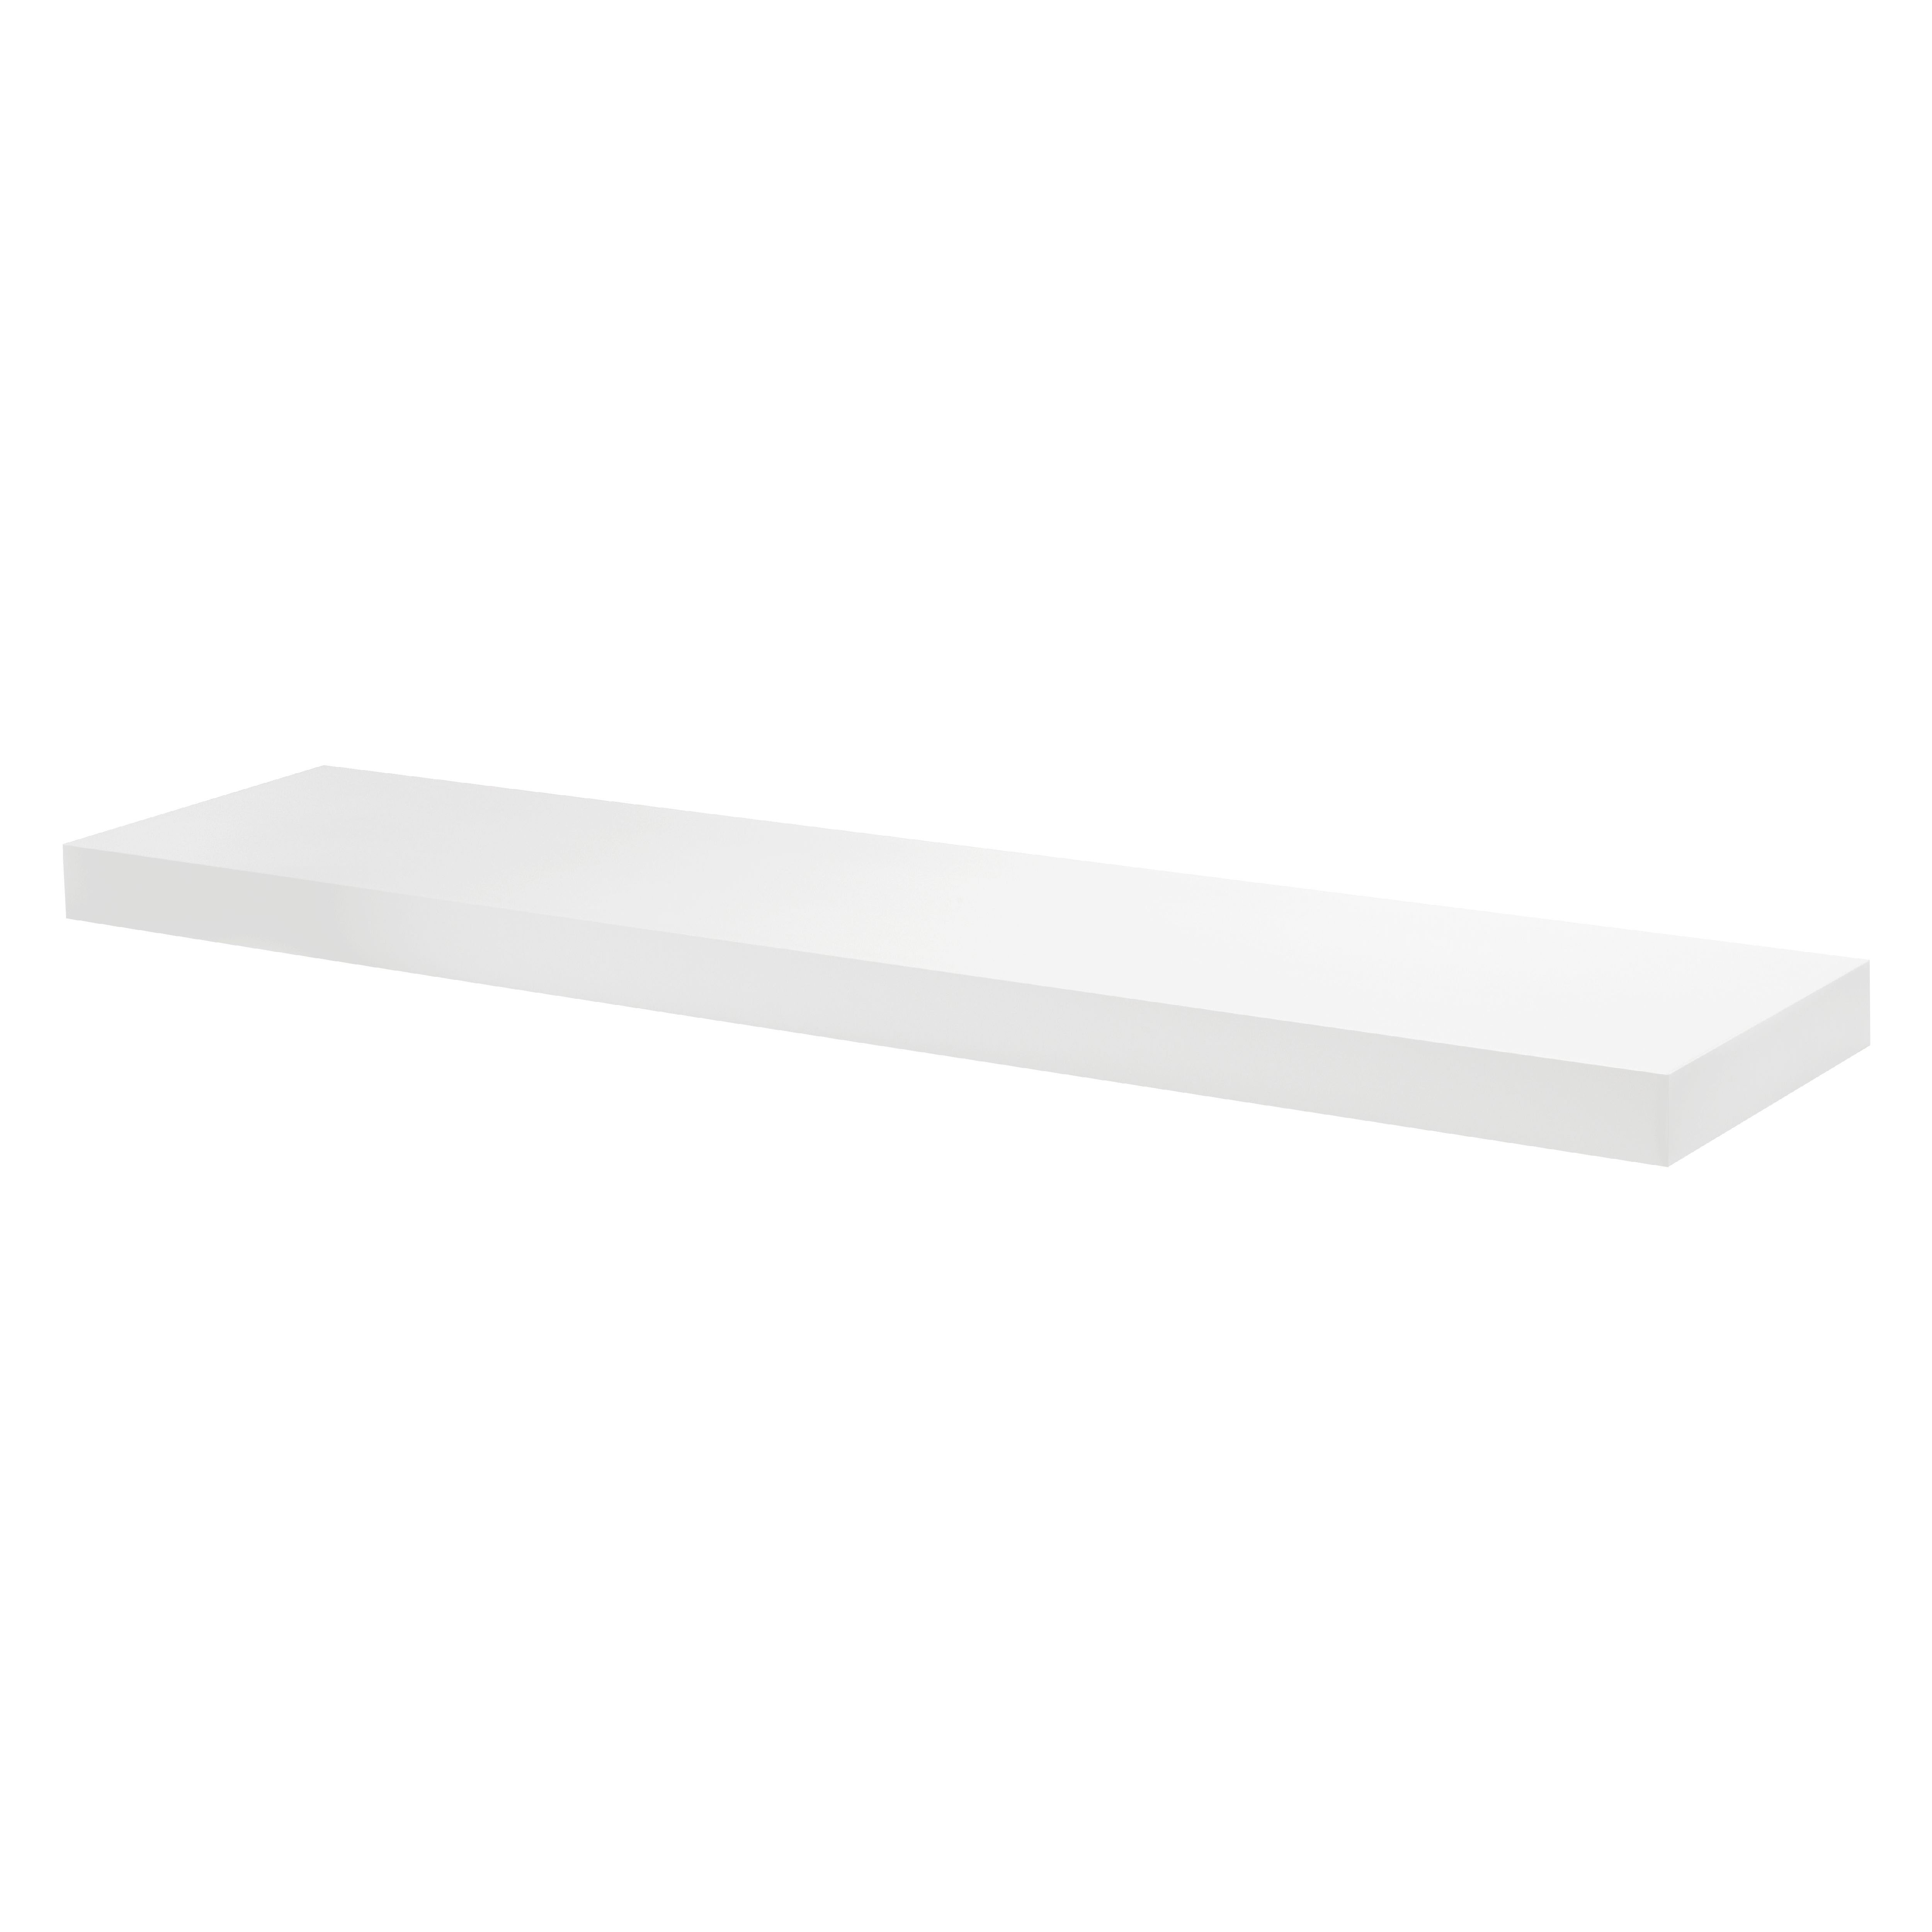 Surprising Large White Floating Shelf Kit 1500X300X50Mm Download Free Architecture Designs Remcamadebymaigaardcom